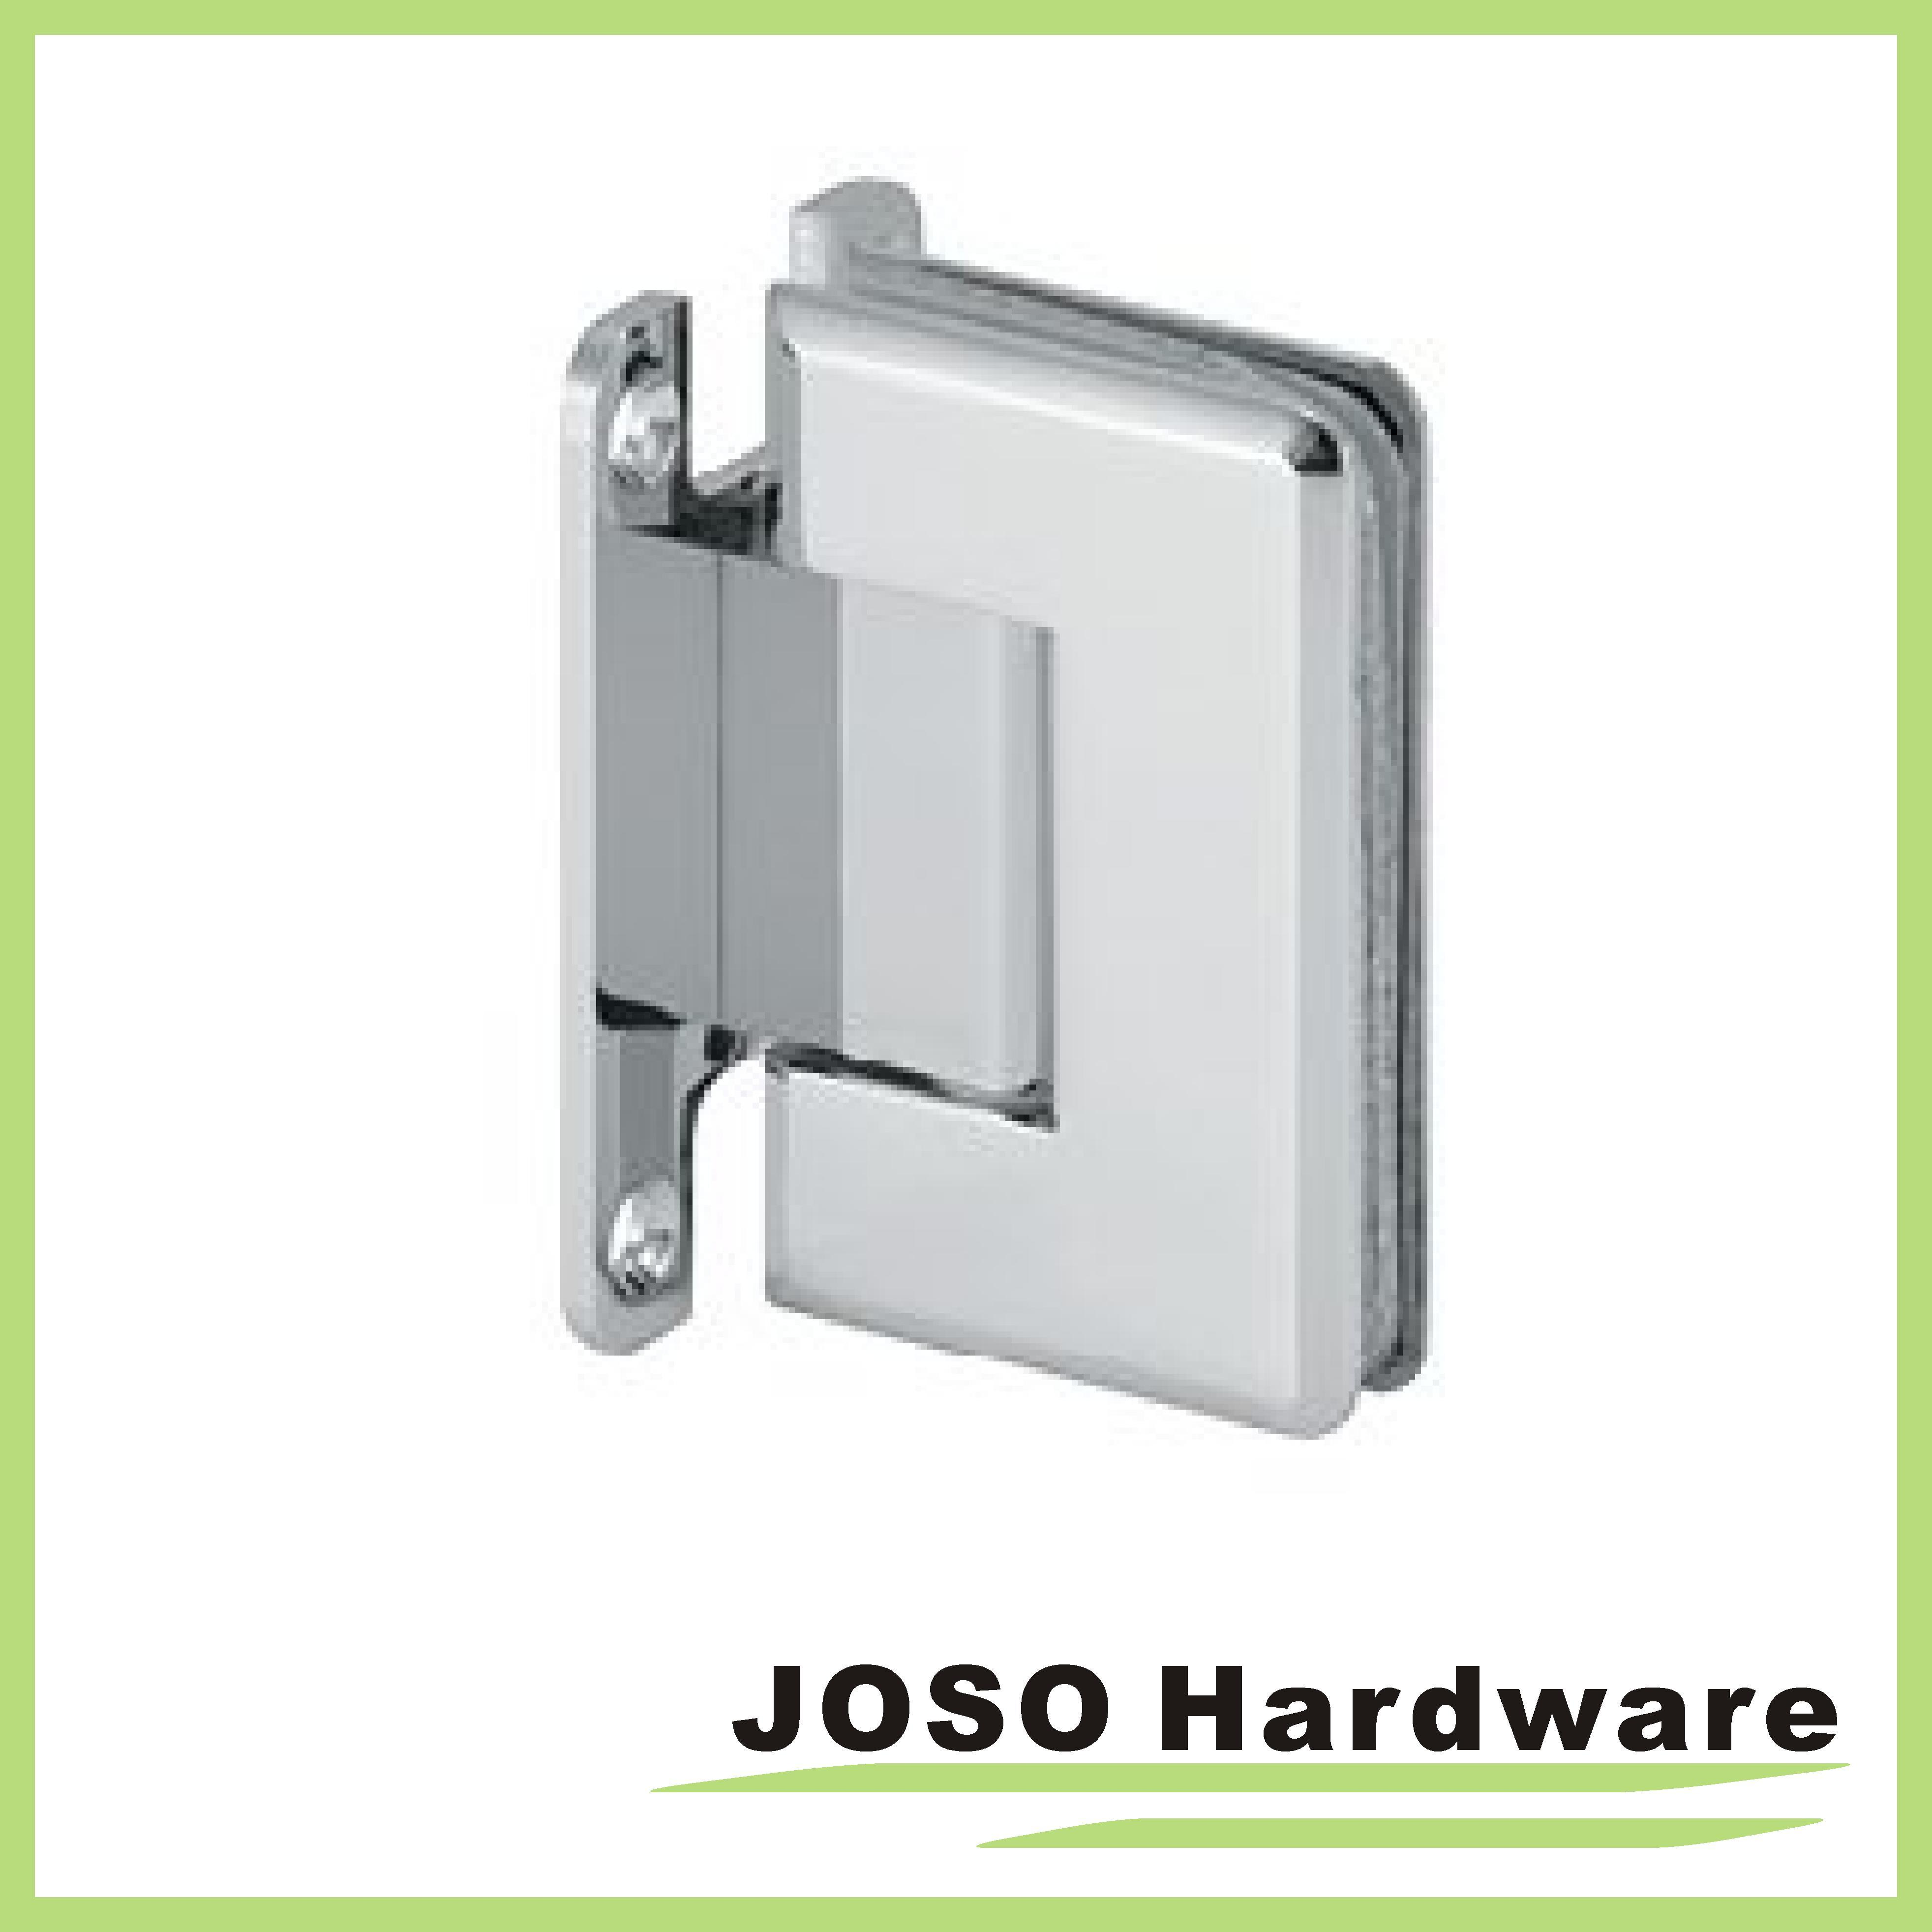 90 Degree Brass Wall Mount Shower Hinge Bh3001